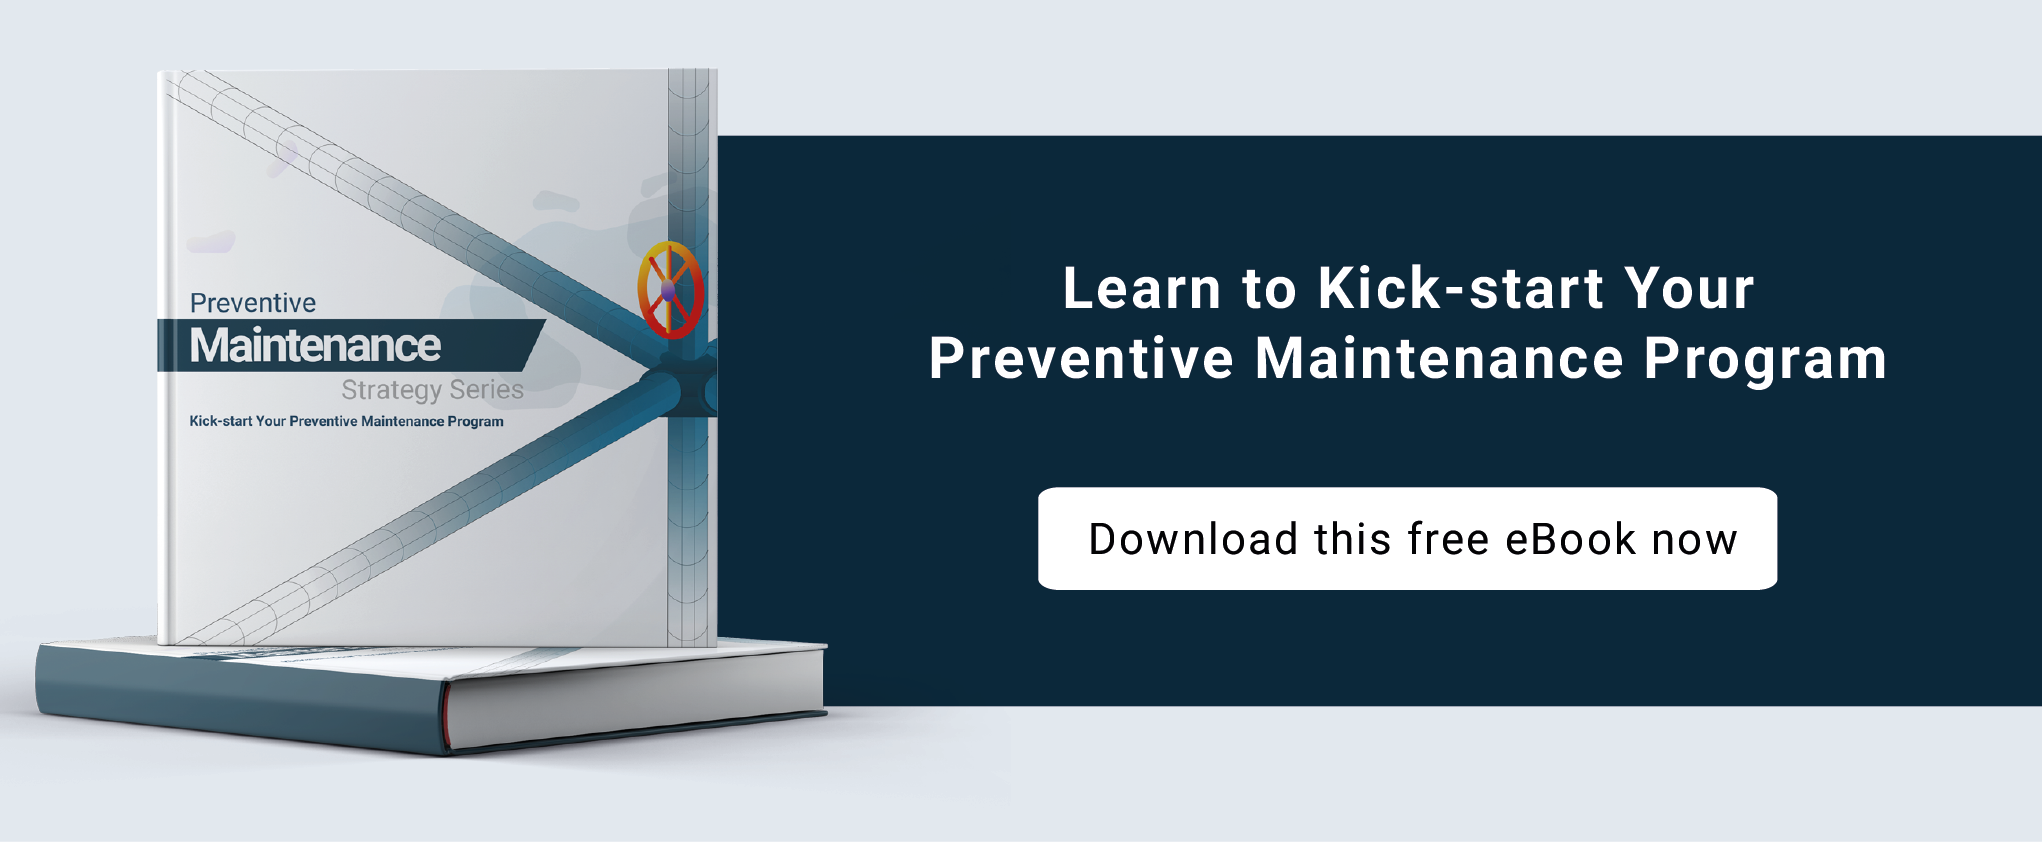 Preventive Maintenance Program E-book